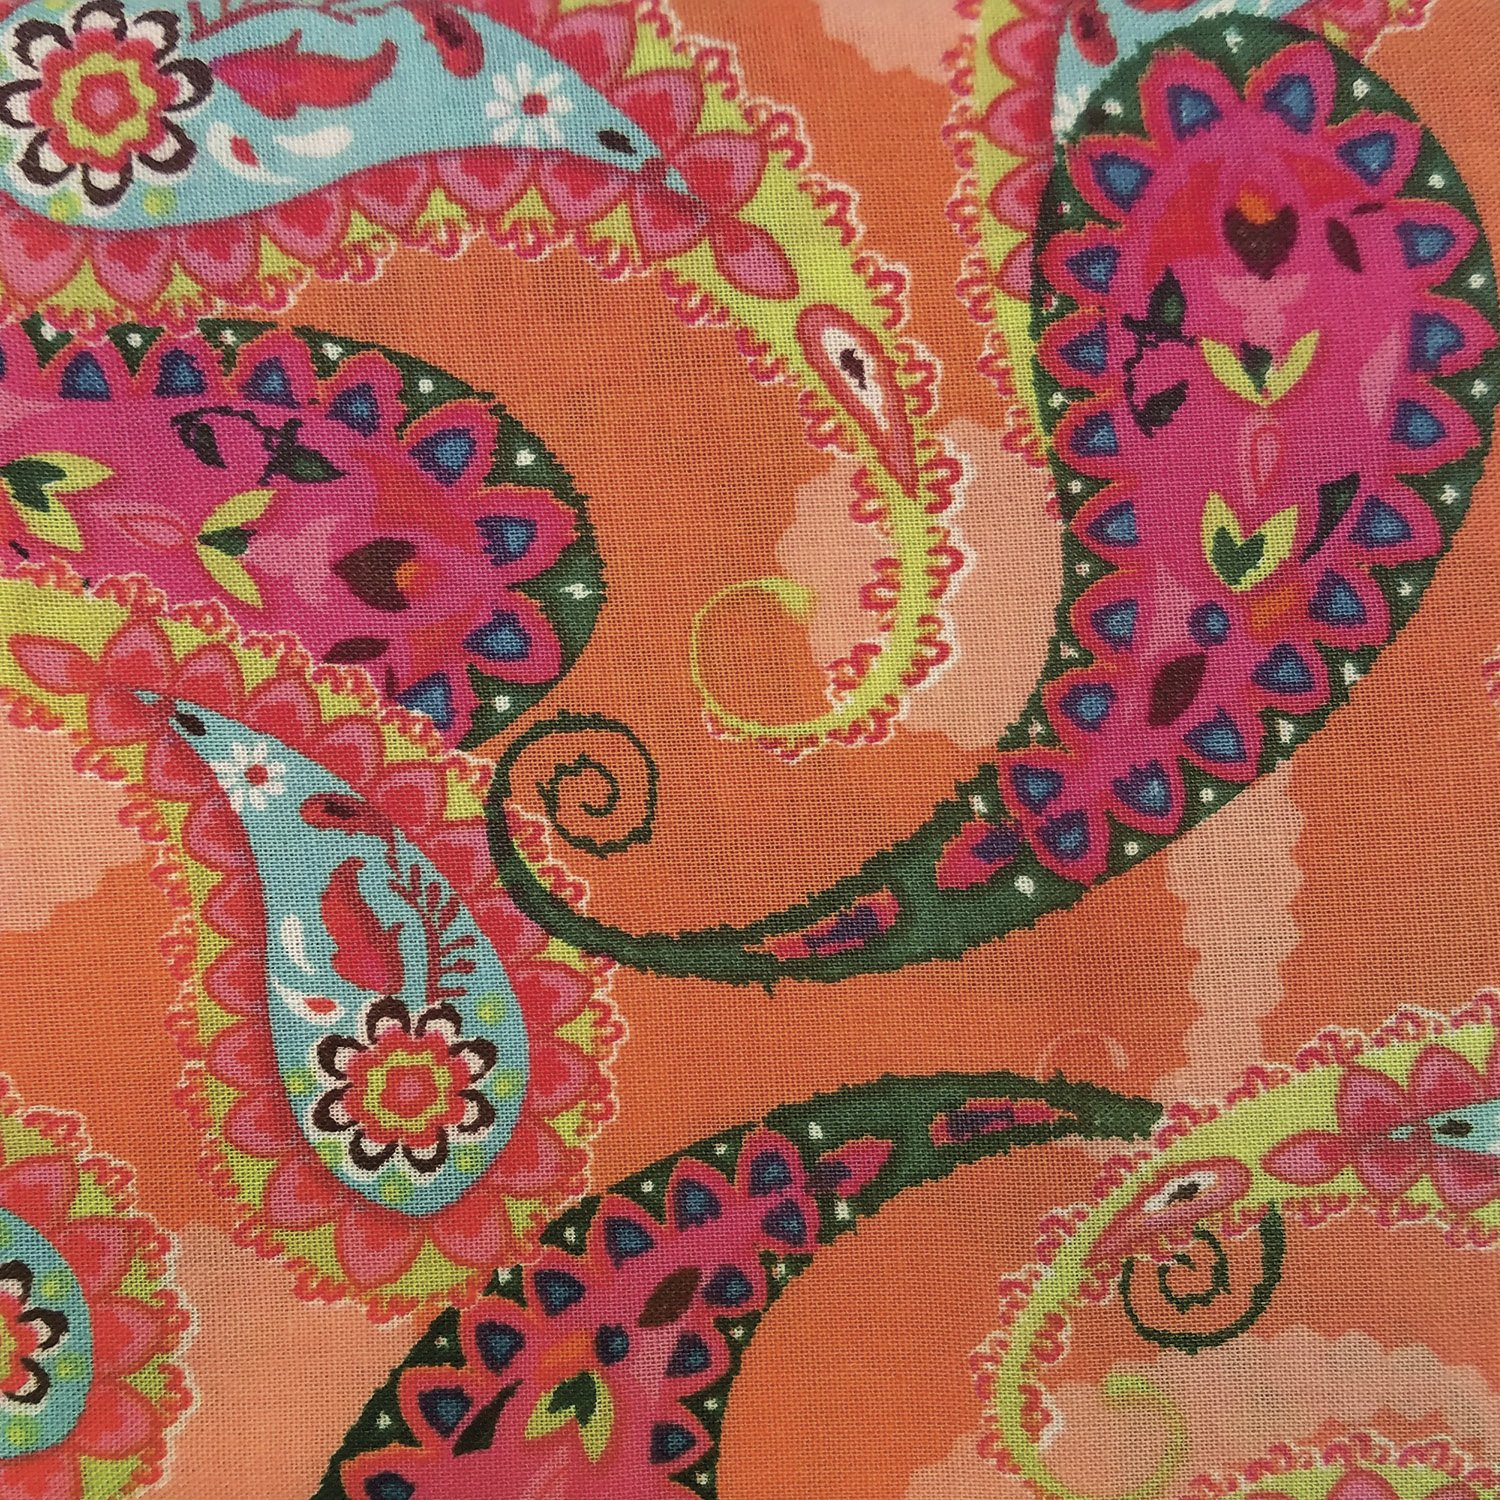 Fabric Palette Fat Quarter <br>Orange - Design may vary <br>MD-G-PC335